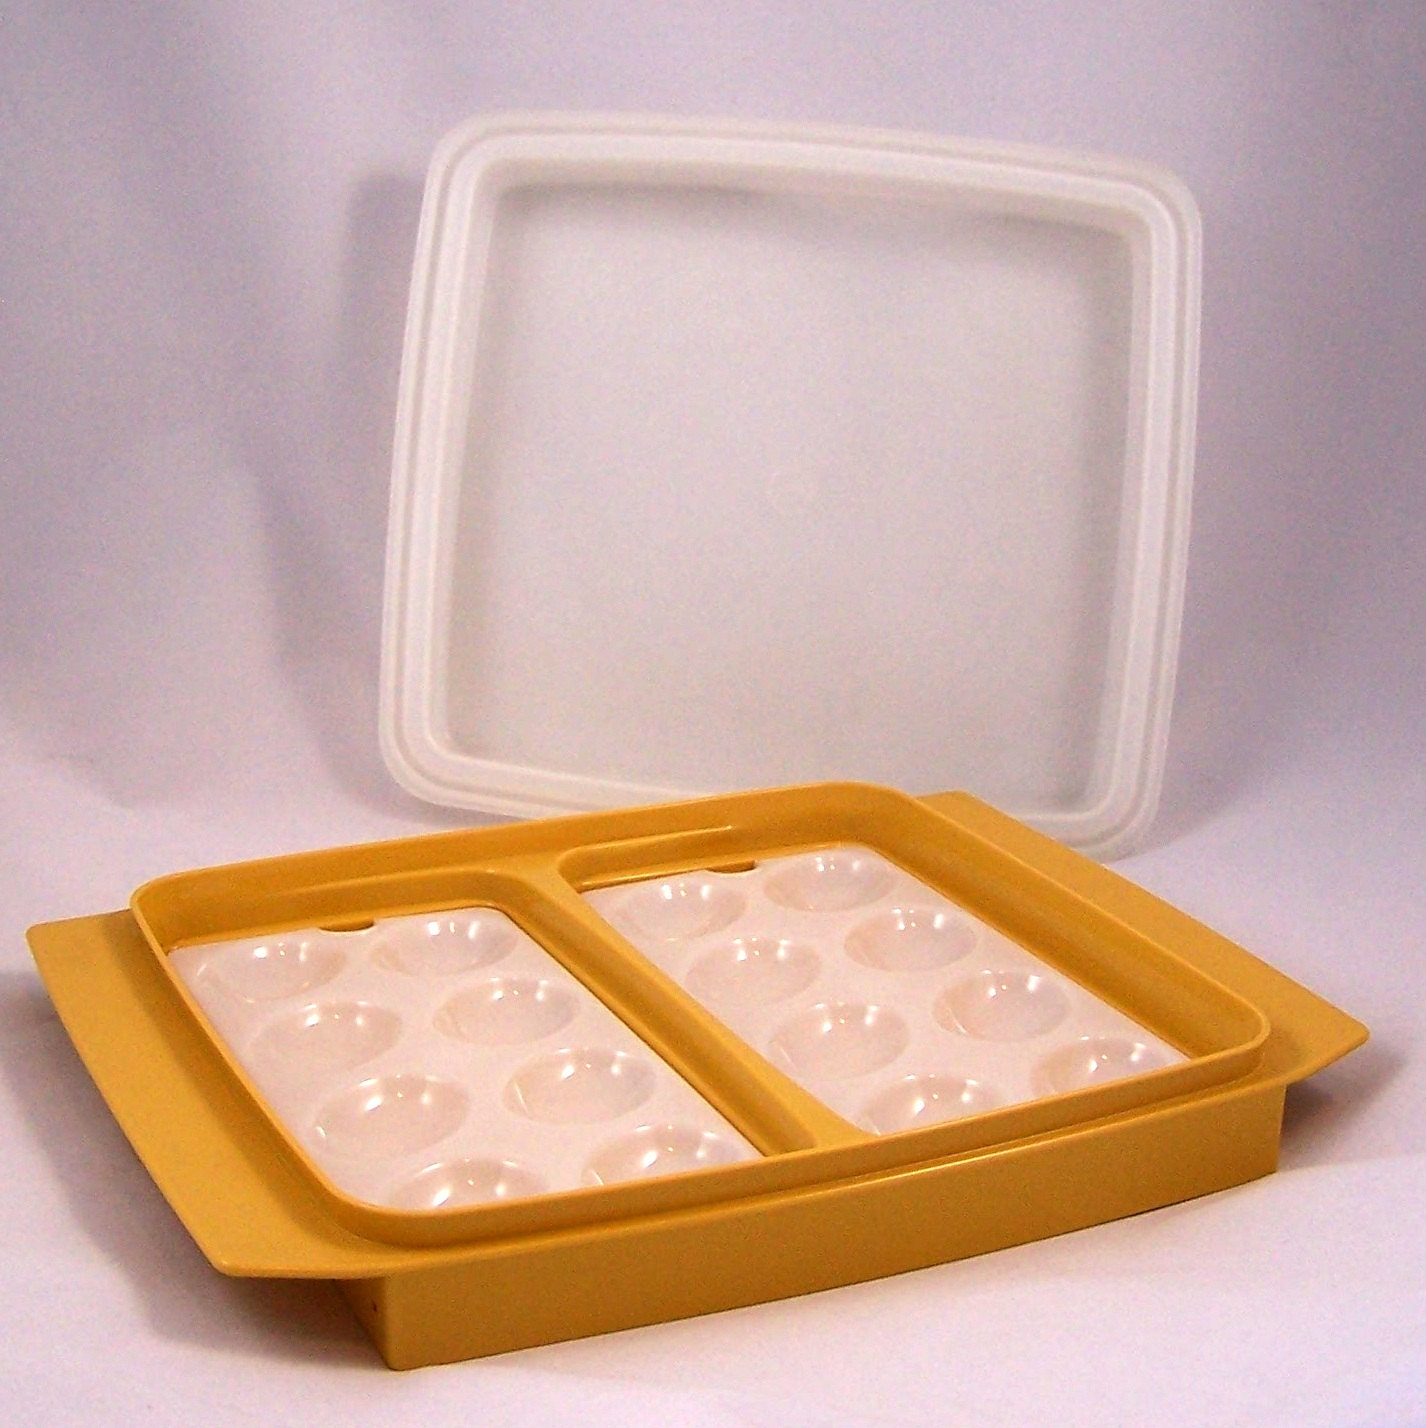 Sectioned Tupperware: Vintage Tupperware Four Piece Egg Carrier And Divided Tray In